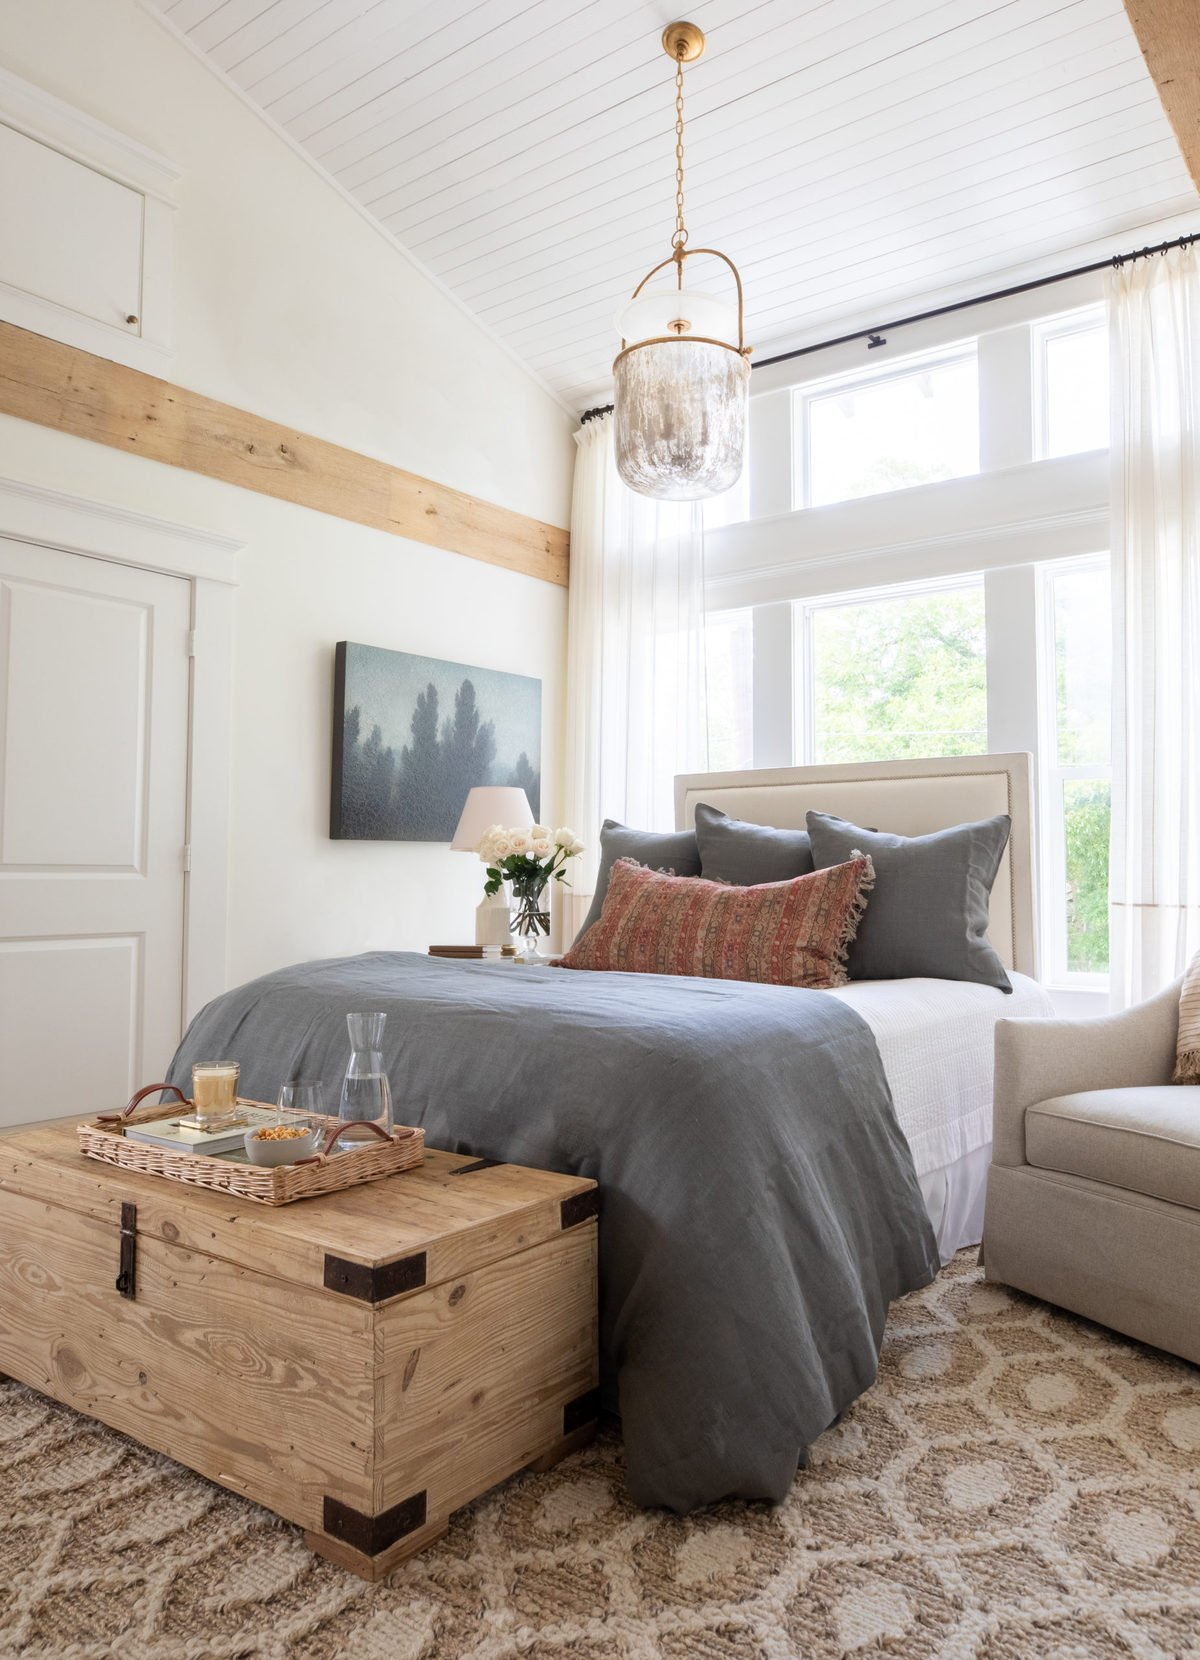 A guest room with white painted walls and wooden beams